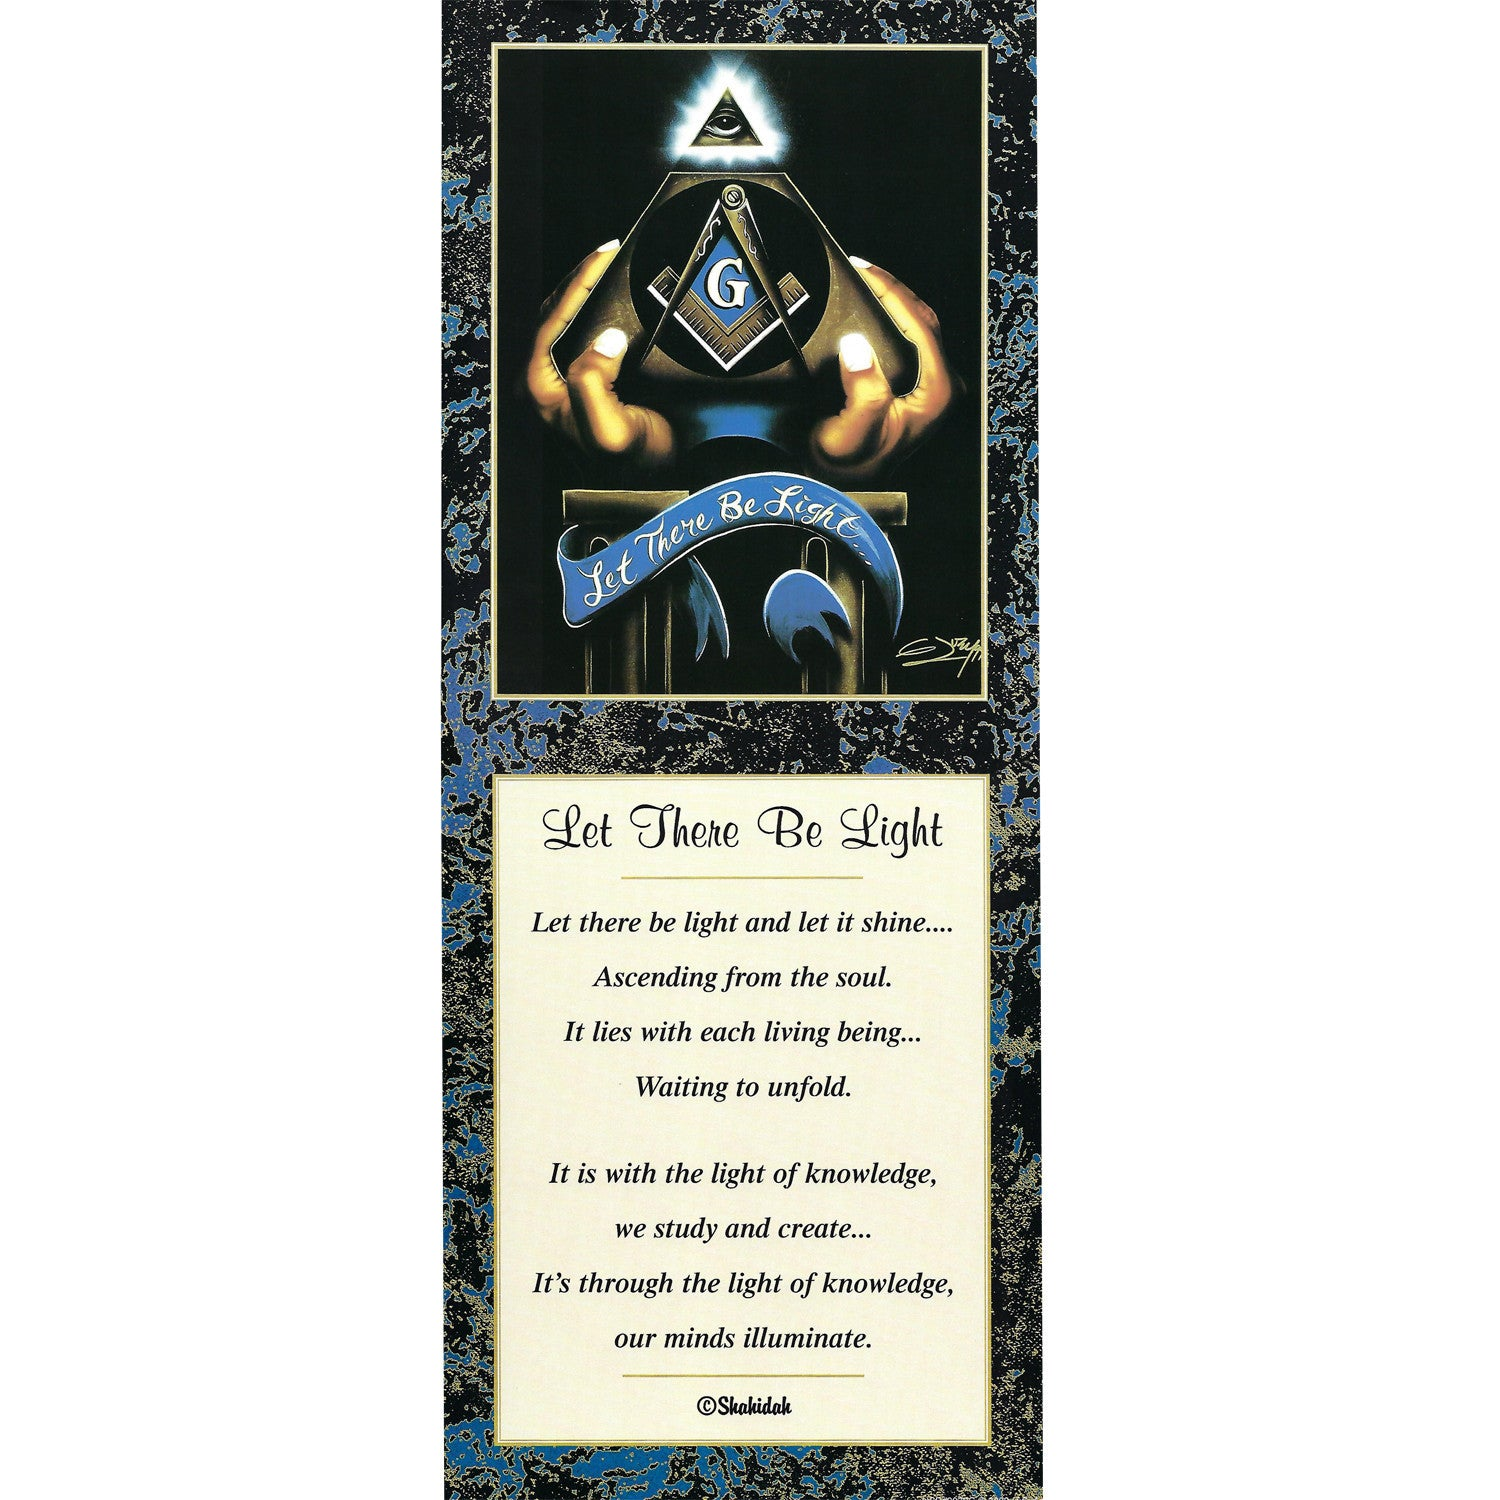 Let There Be Light (Freemasonry) by Gerald Ivey and Shahidah